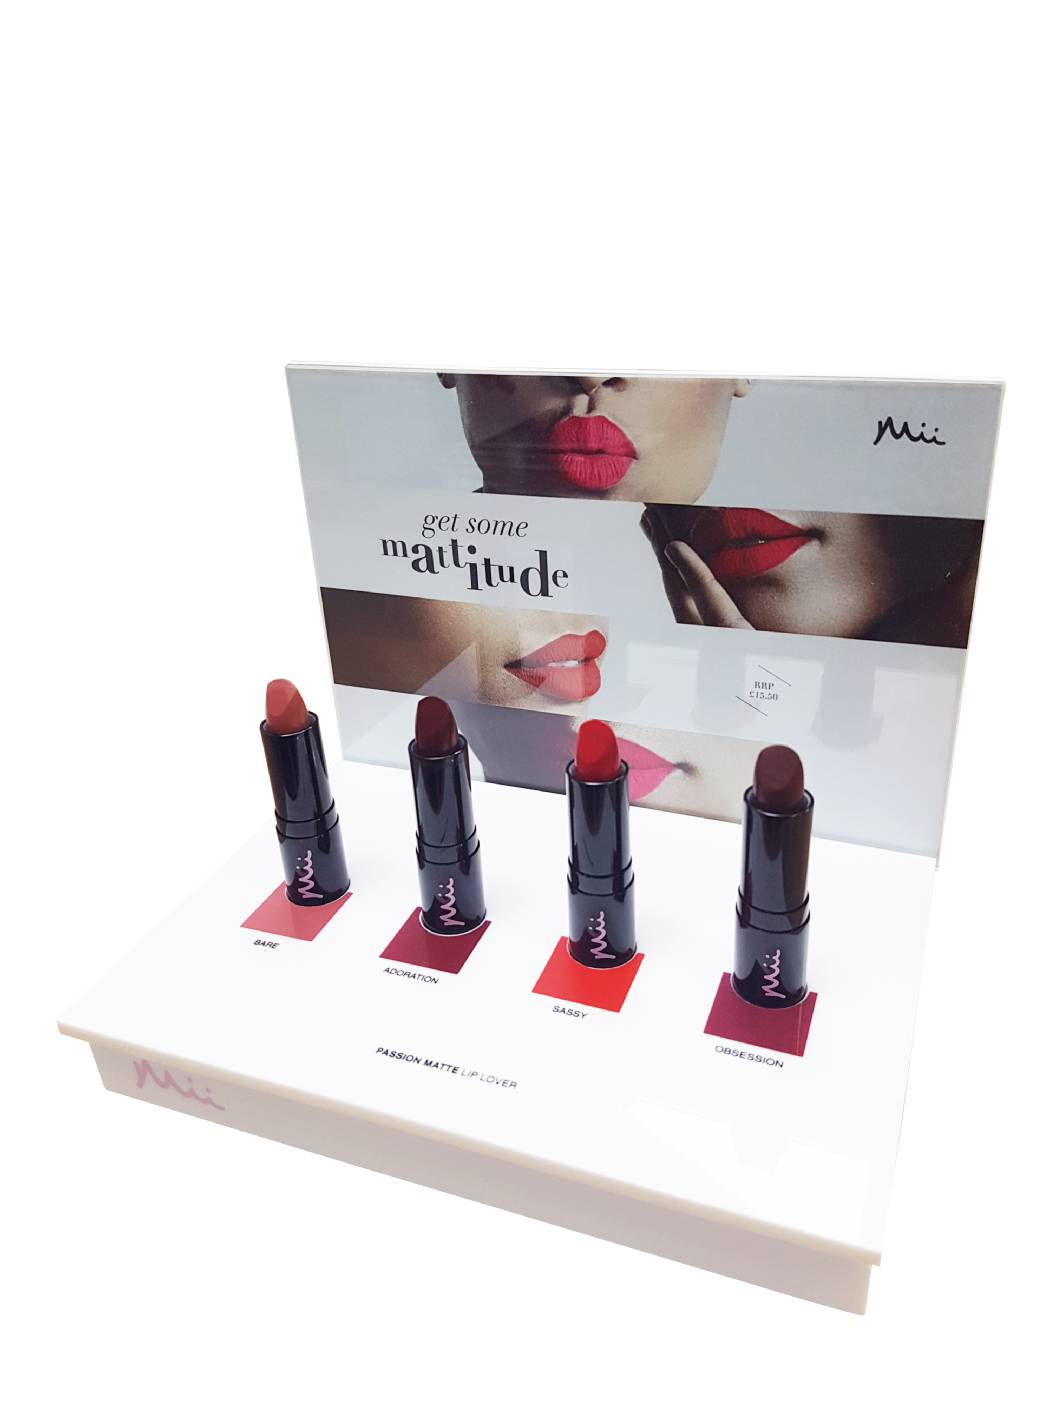 Matte Lippenstifte Display, Passion Matte Display